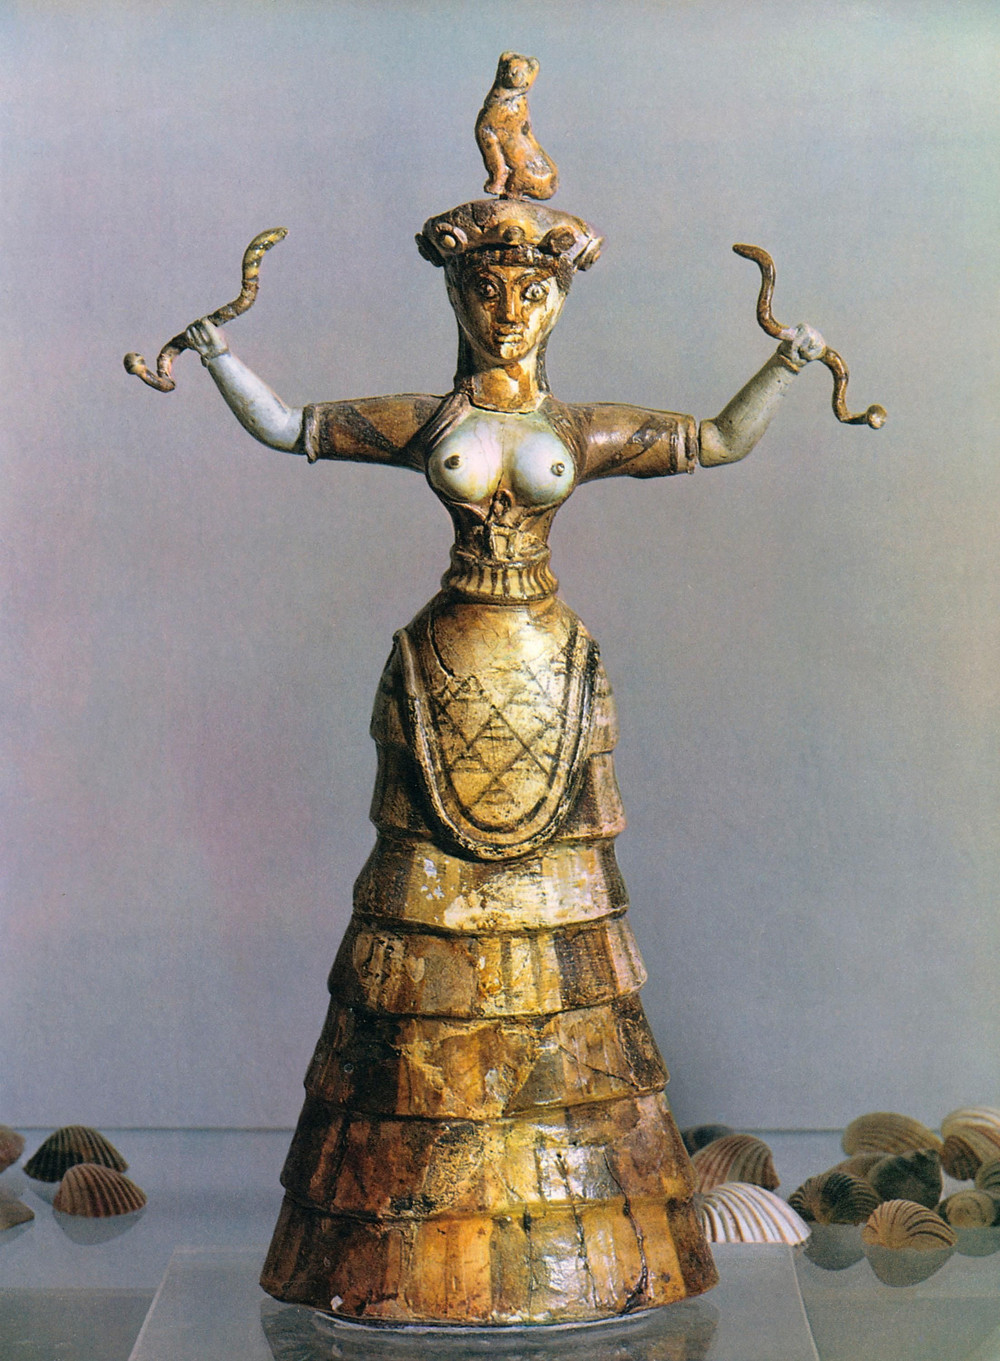 restored snake goddess sculpture, discovered at Knossos now in the Heraklion Museum